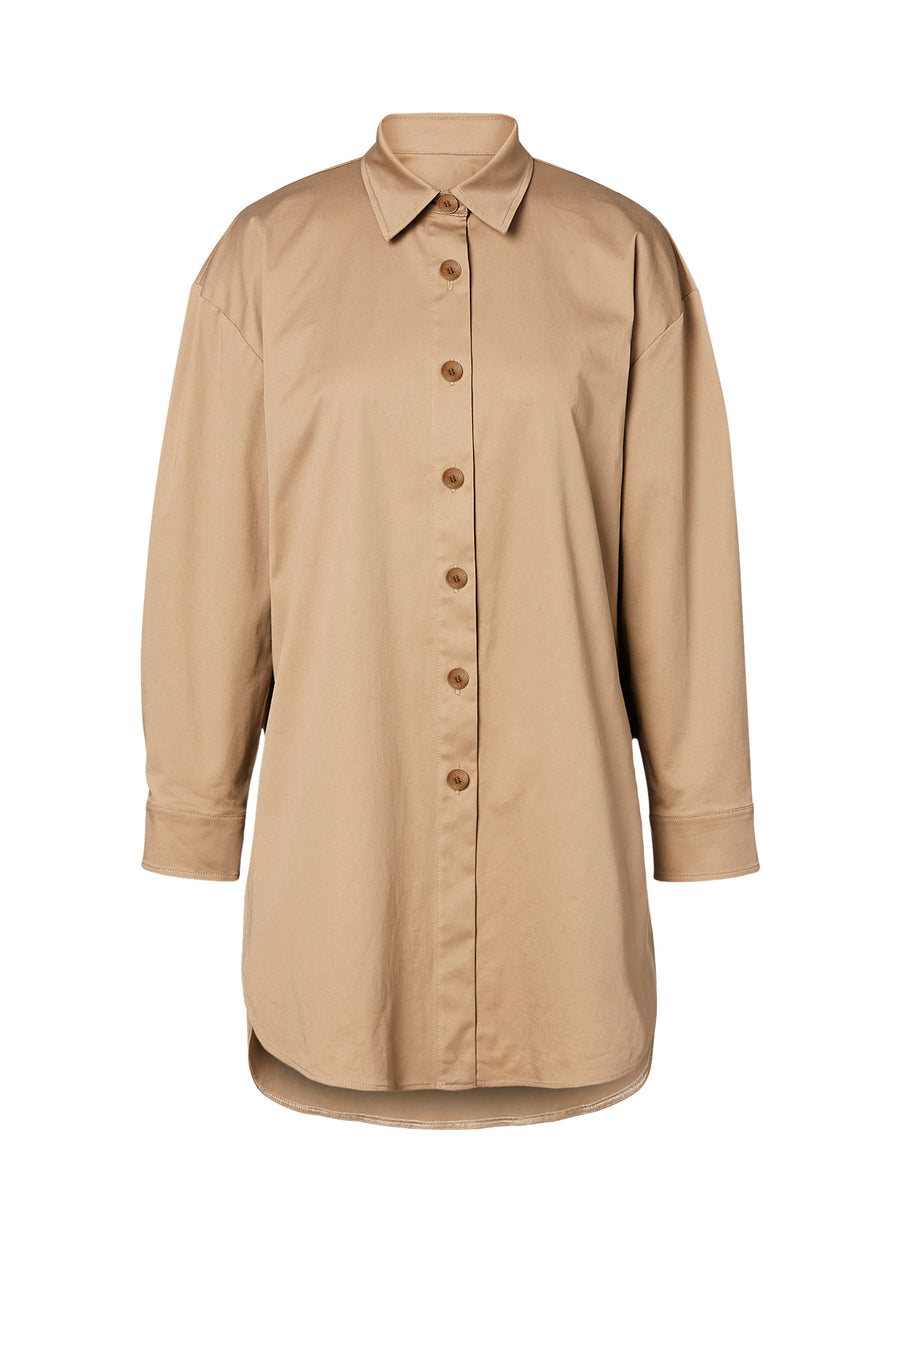 Cotton Sateen Shirt Camel - Scanlan Theodore